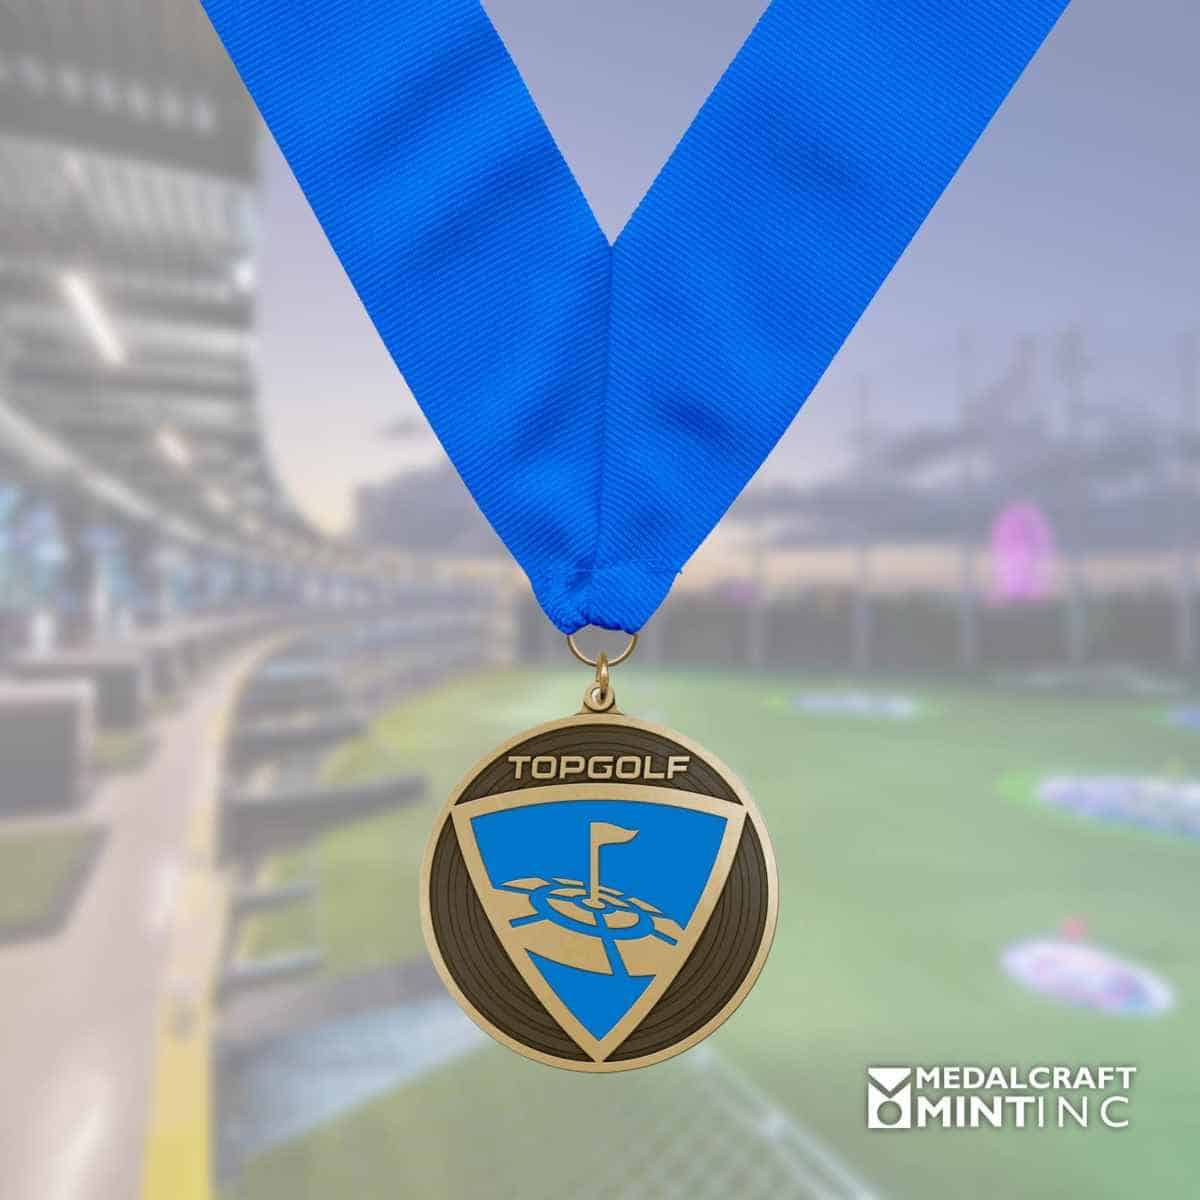 The Challenge: Create a More Attractive Award Medal and Ribbon for a Similar Price